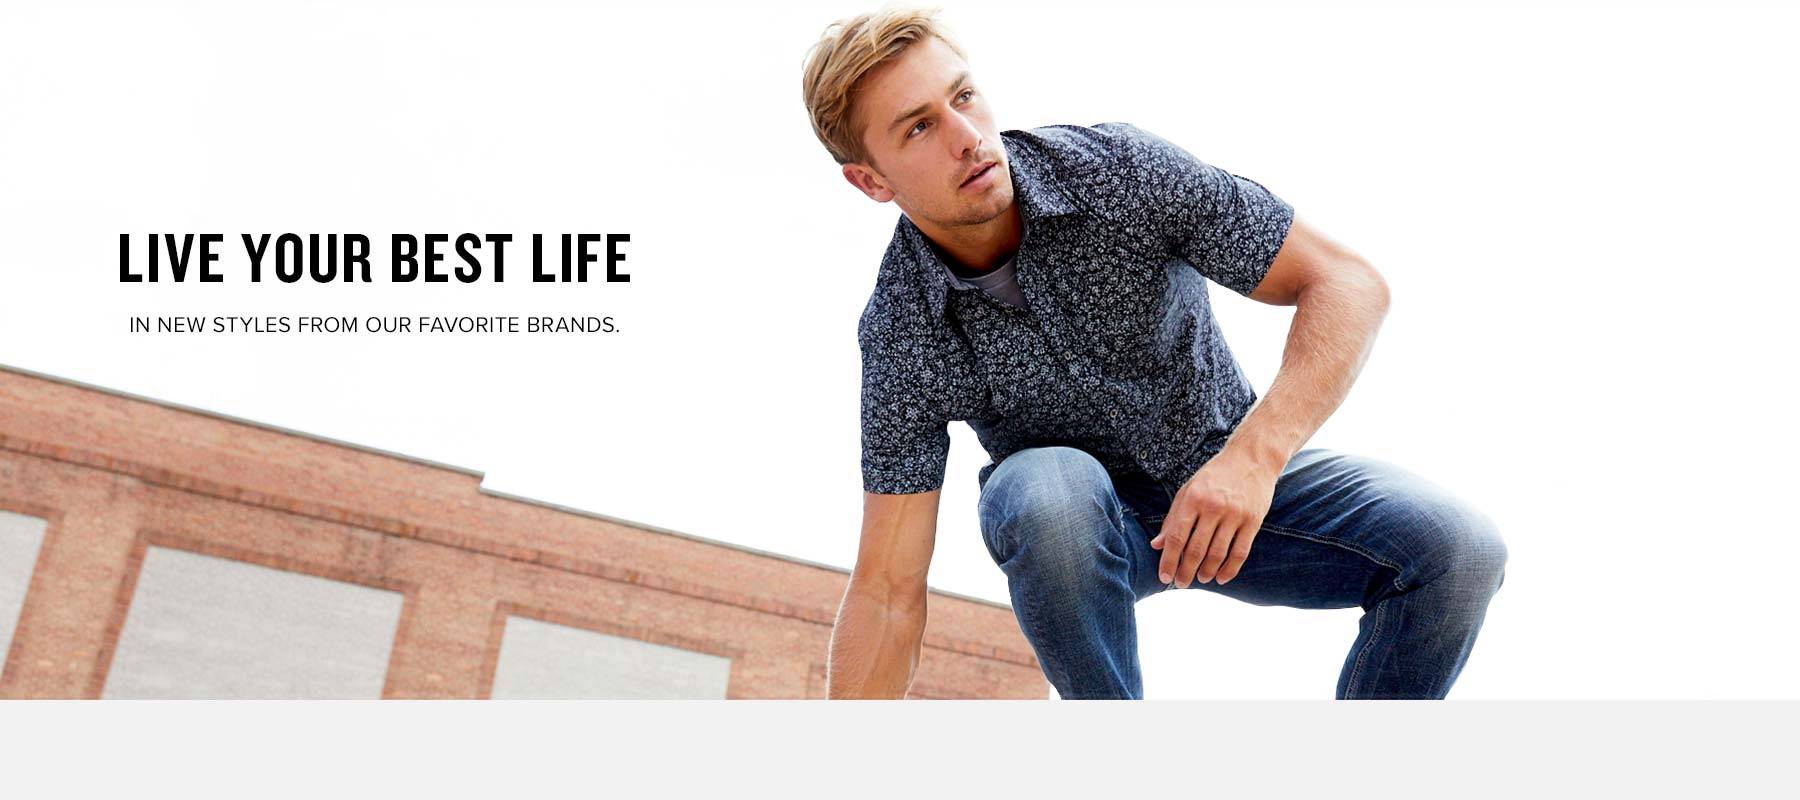 Live you best life in new styles from our favorite brands.